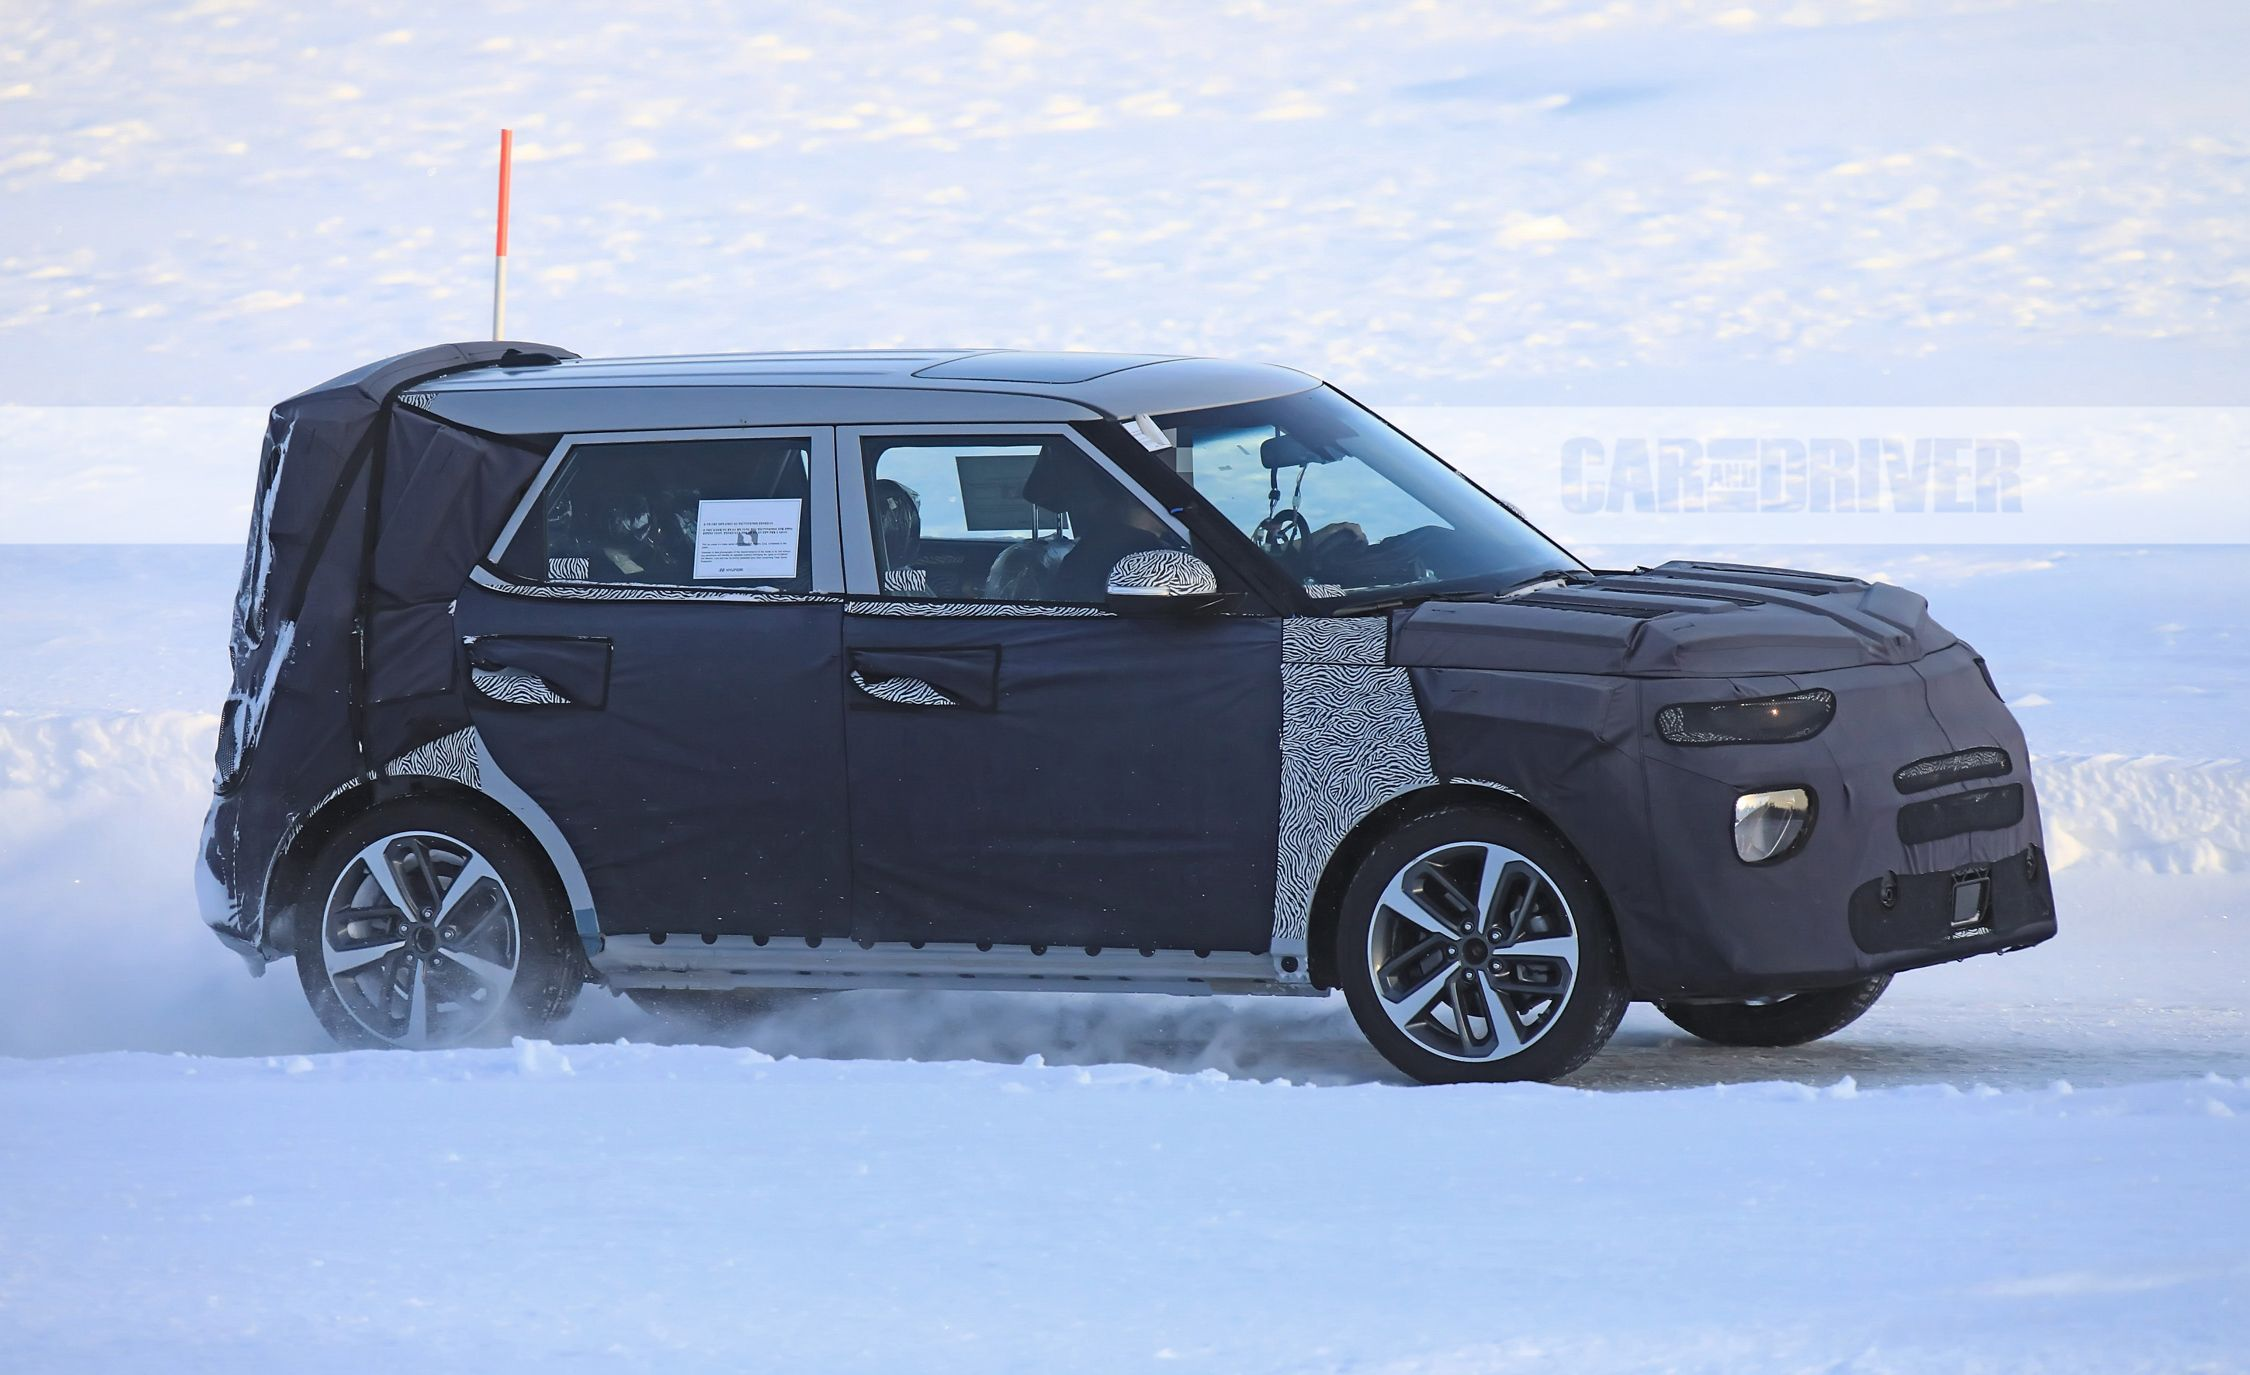 may original s driver long reviews intro term rack test photo kia car spied and soul news get review awd roof